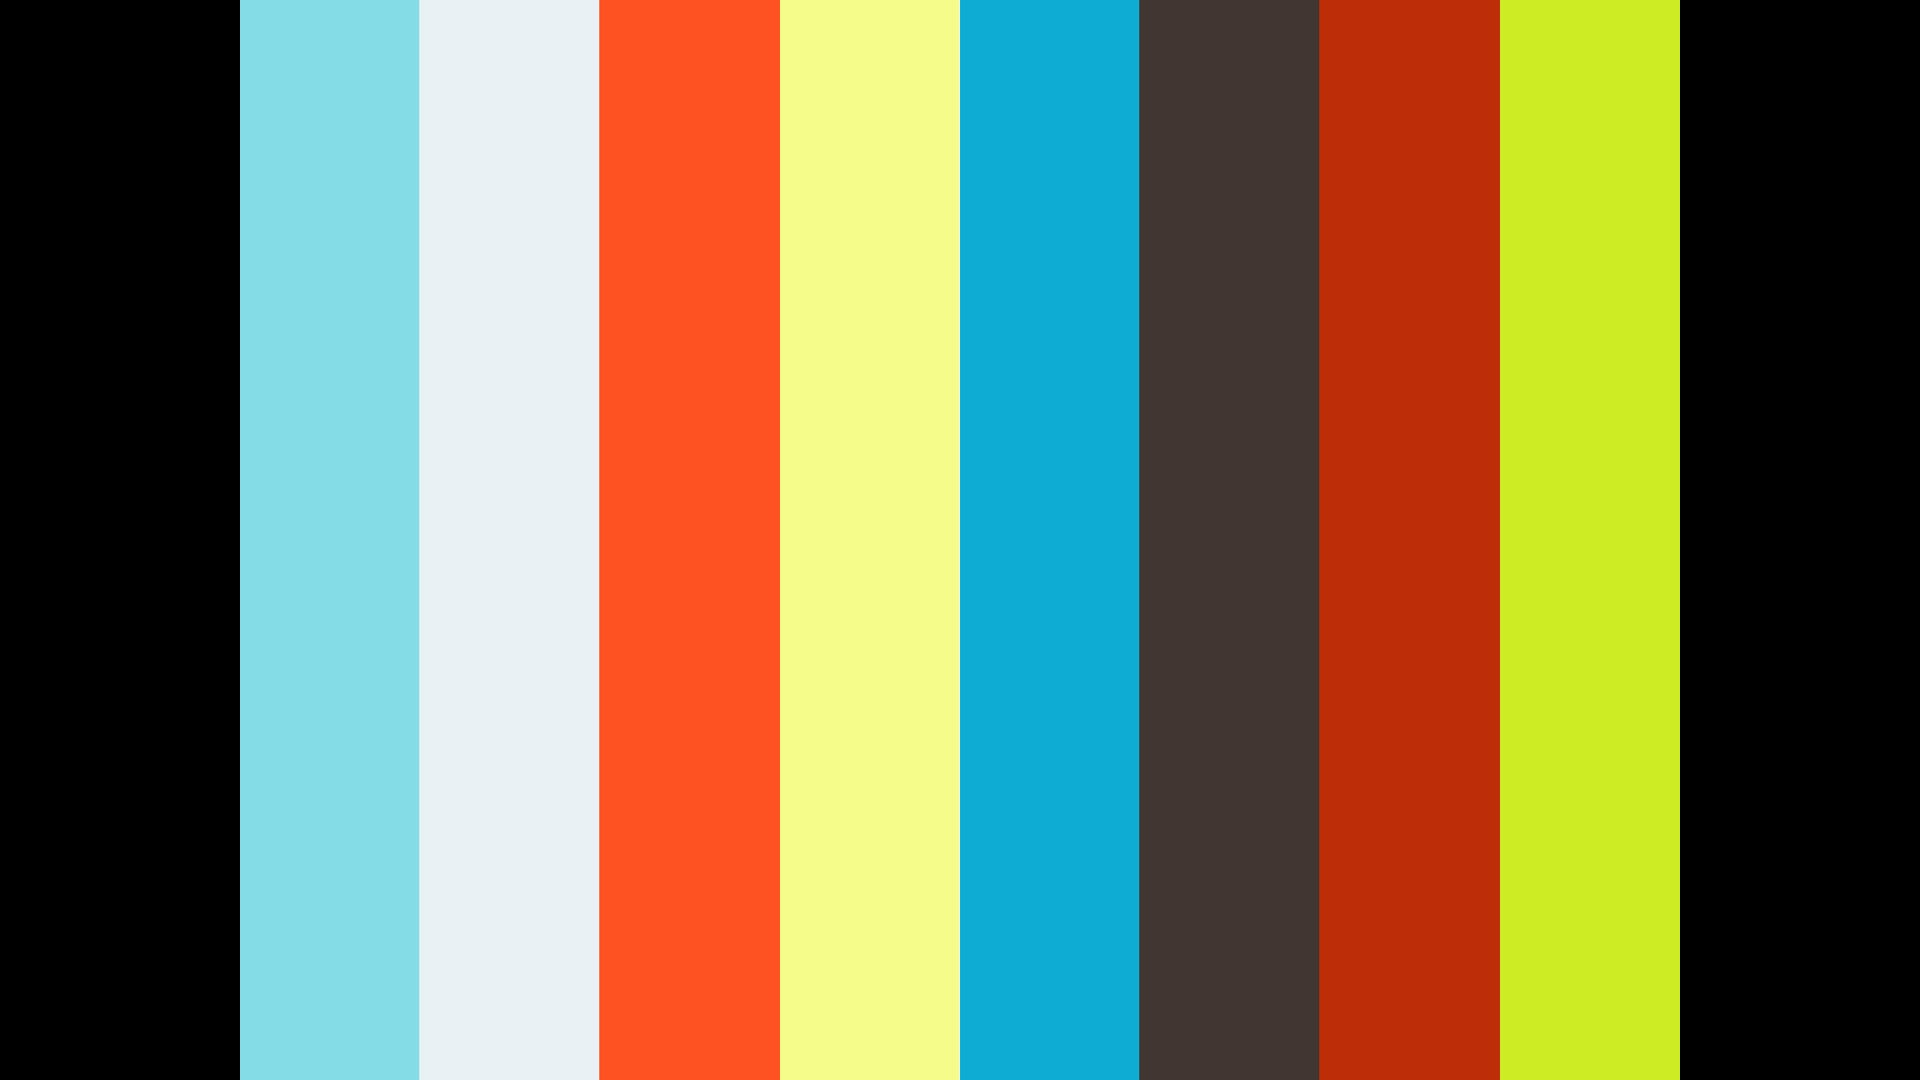 Narrative vs. Advocacy Panel - Collaborations for Cause 2014